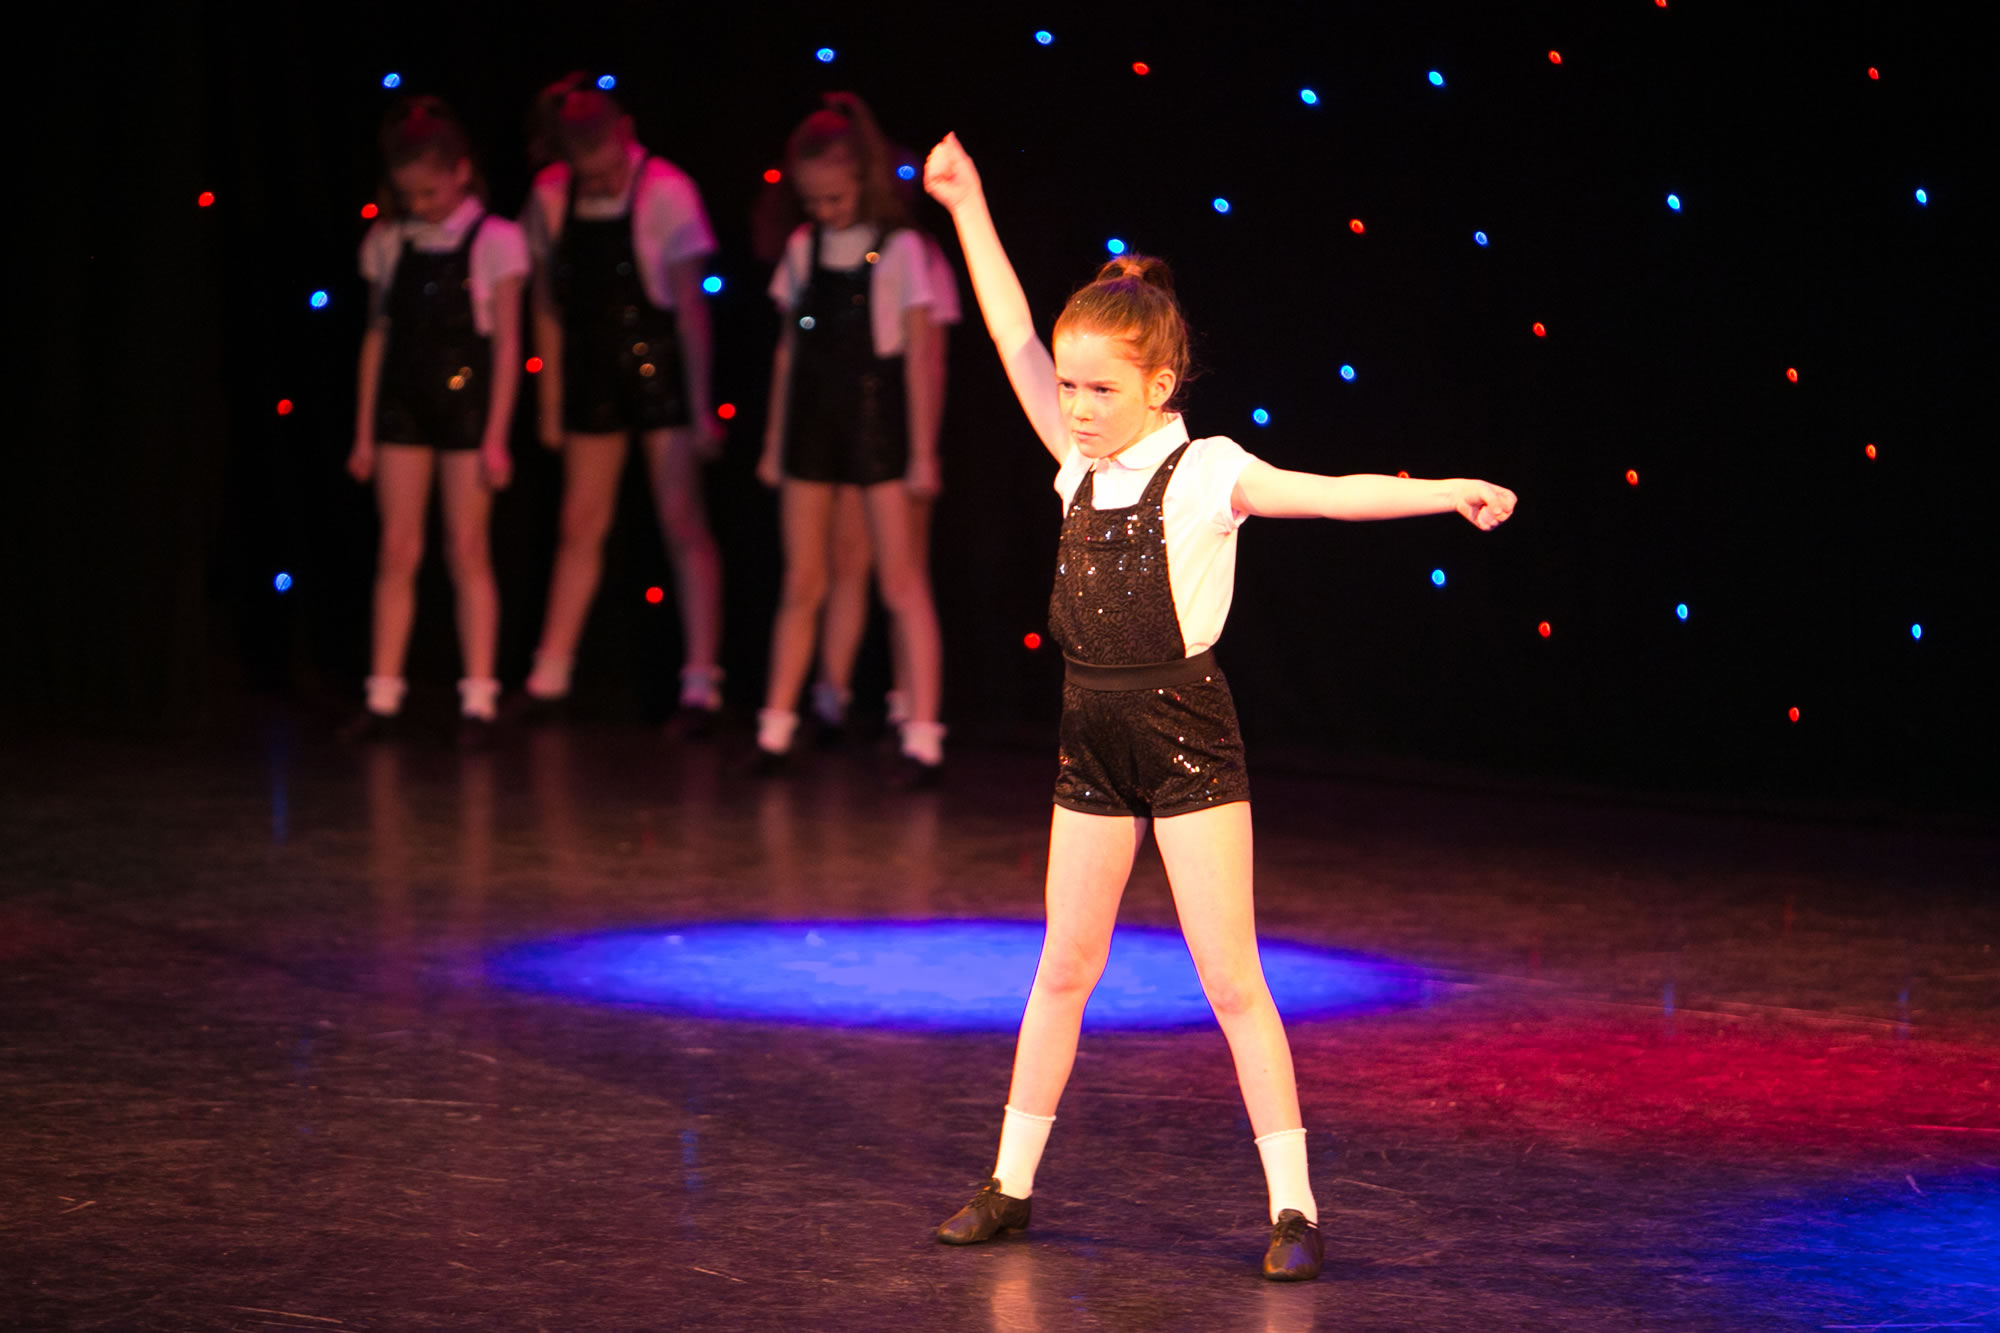 Hitchin_School_of_Dance_Show_2019-SM1_3052.jpg